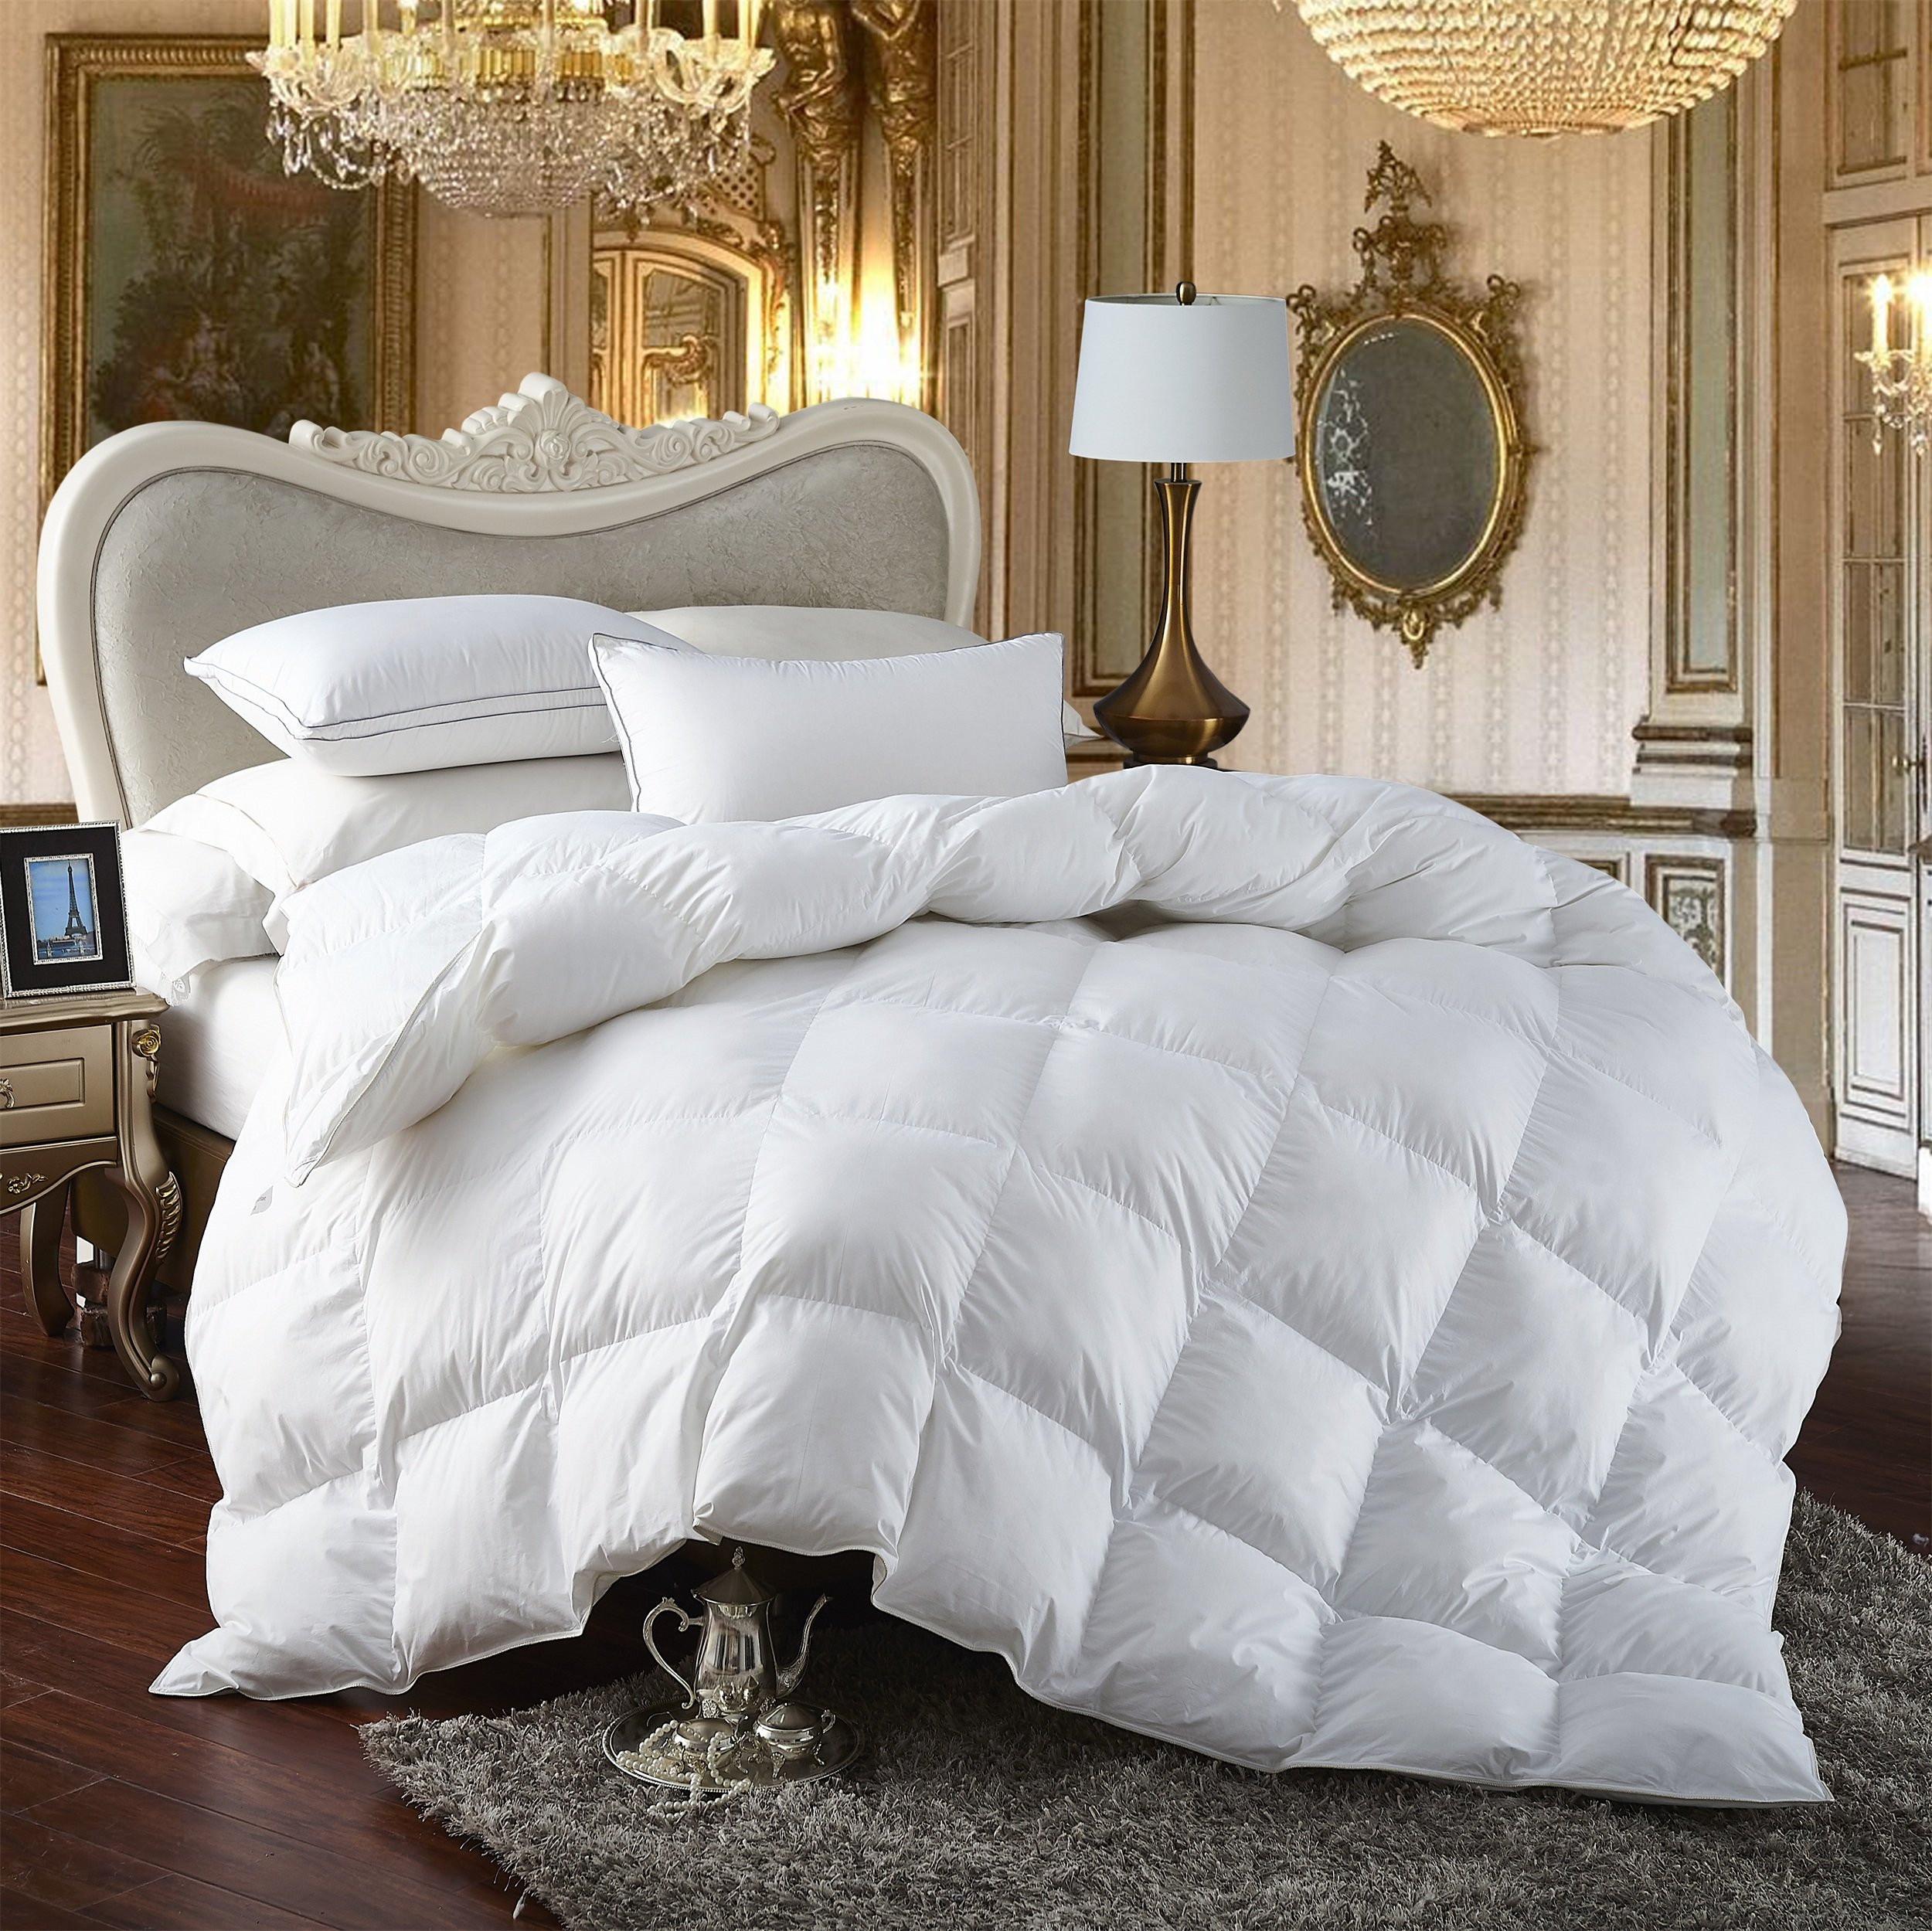 Egyptian Bedding All Season King Size Luxury Siberian